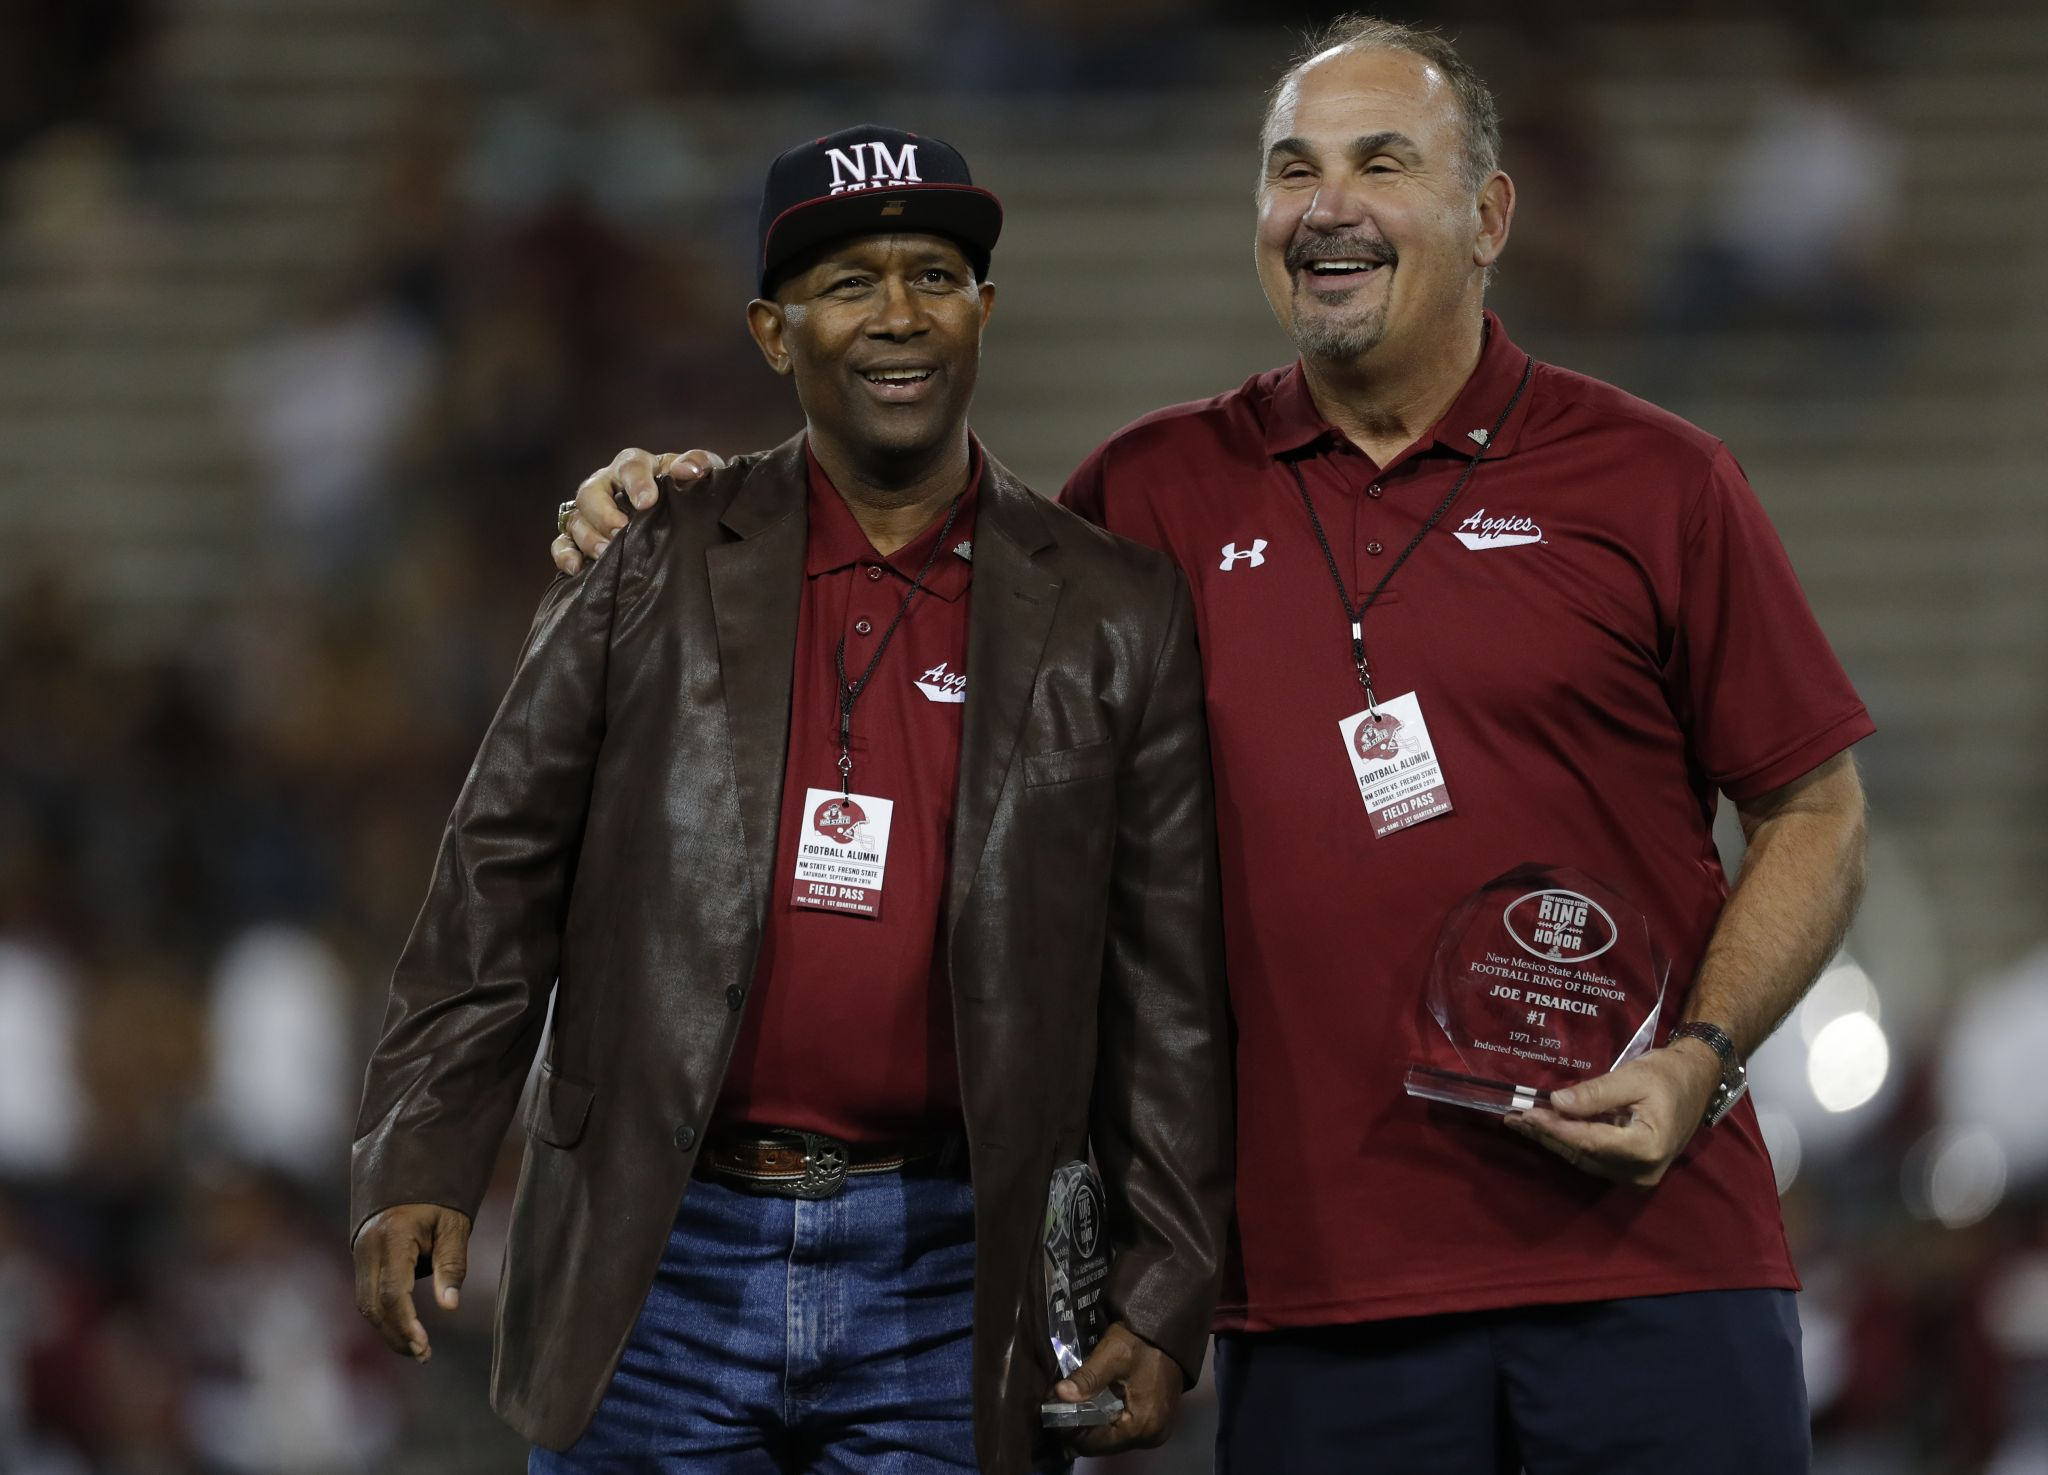 Duriel Harris inducted into Ring of Honor